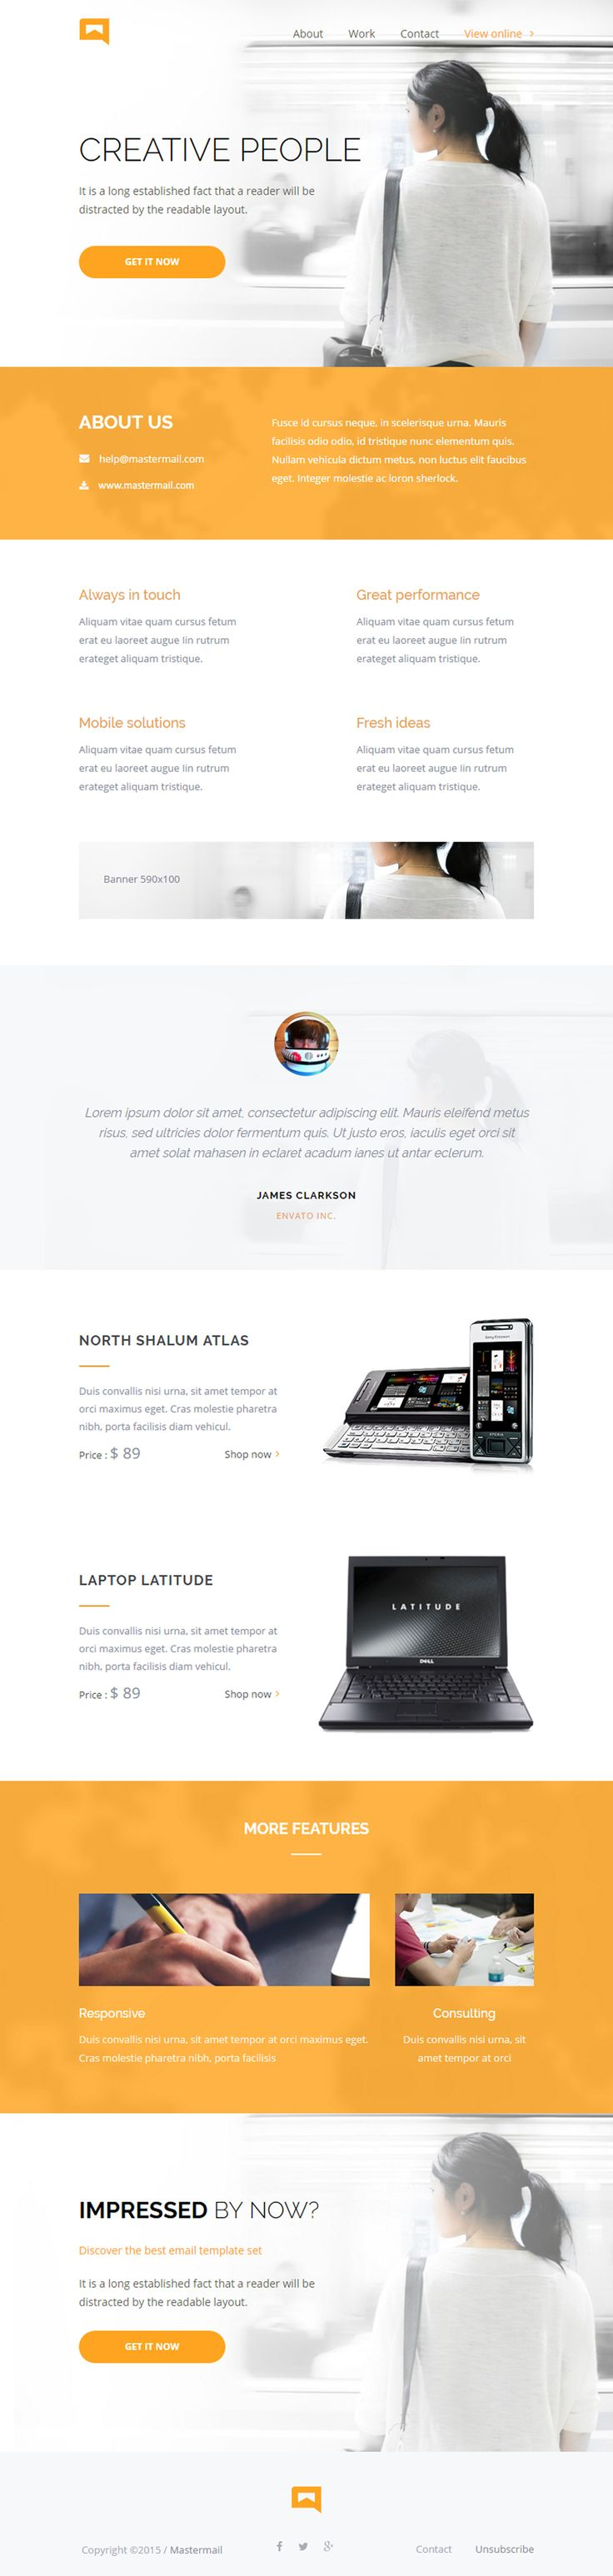 1000 ideas about email templates on pinterest premium wordpress themes landing pages and. Black Bedroom Furniture Sets. Home Design Ideas